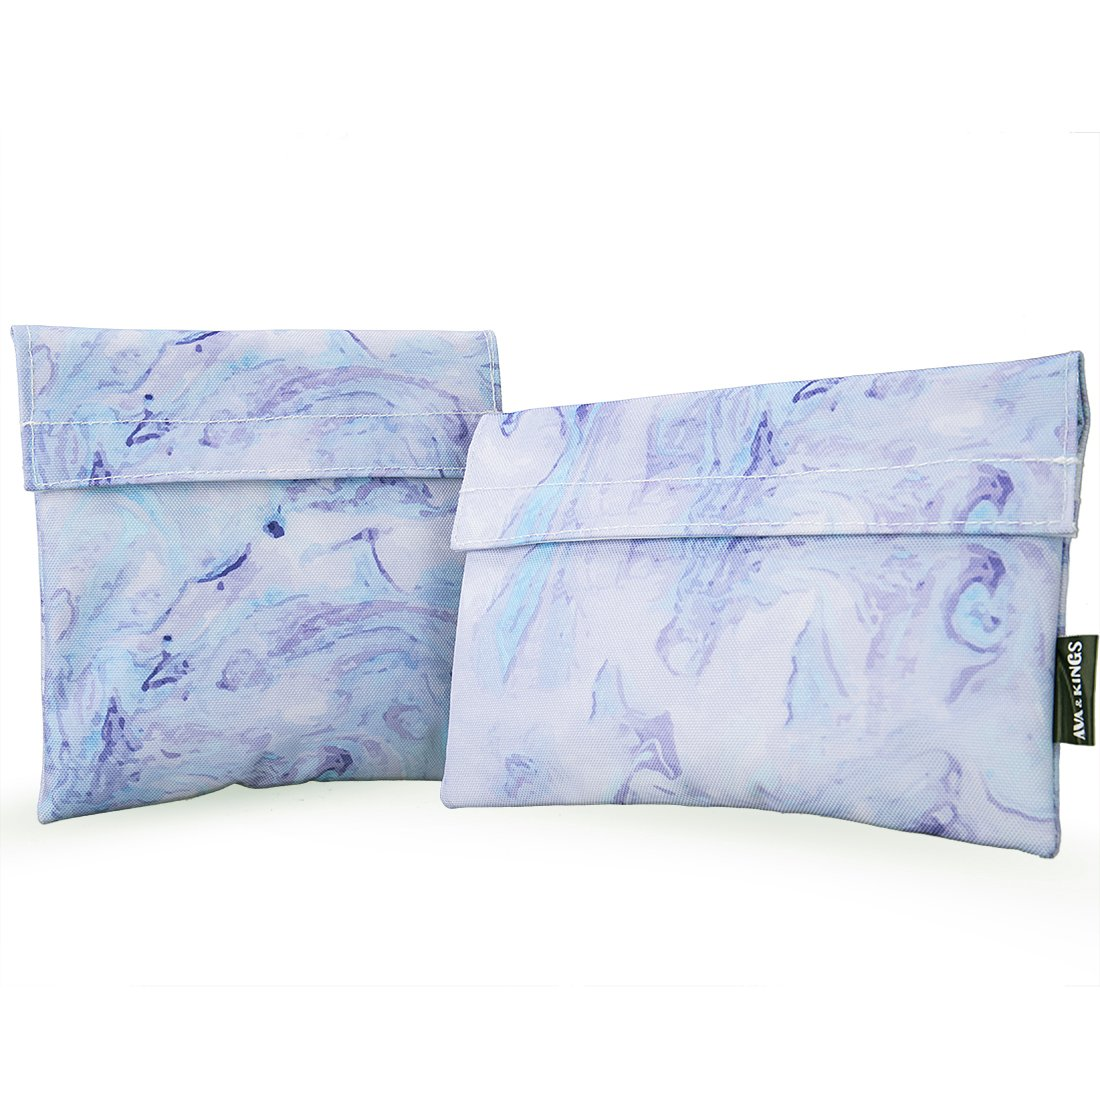 Ava & Kings 2pc Eco Friendly Reusable Snack Bags Sandwich Wrap w/Insulated Fabric - Great for School Lunch, Work, Picnic Food, Boys & Girls - Sizes: 7x7 in & 6x9 in - Purple Marble